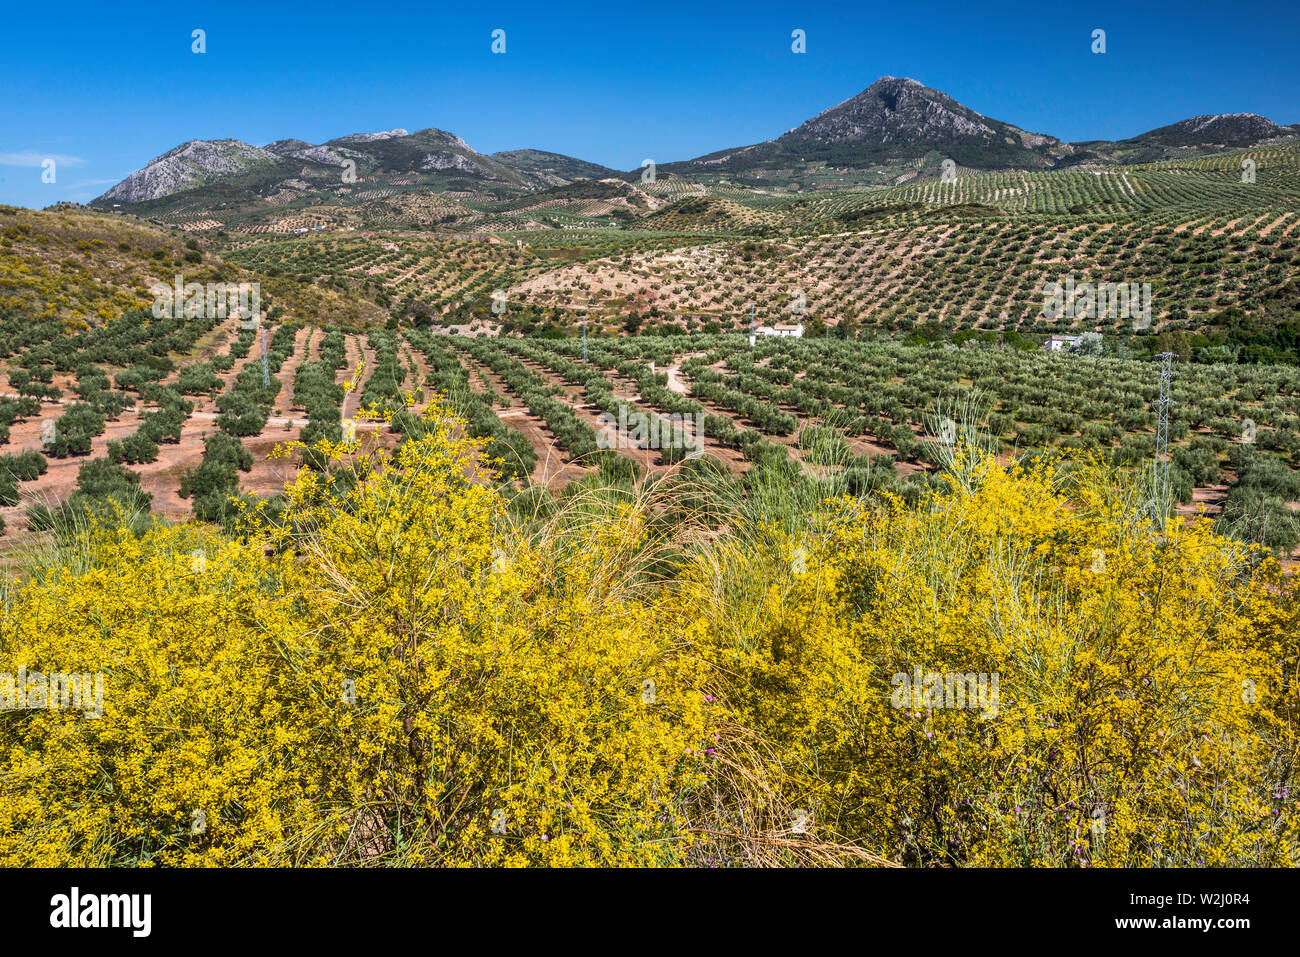 Olive tree orchards, Sierra Ahillos in distance, near Alcaudete, Jaen province, Andalusia, Spain - Stock Image